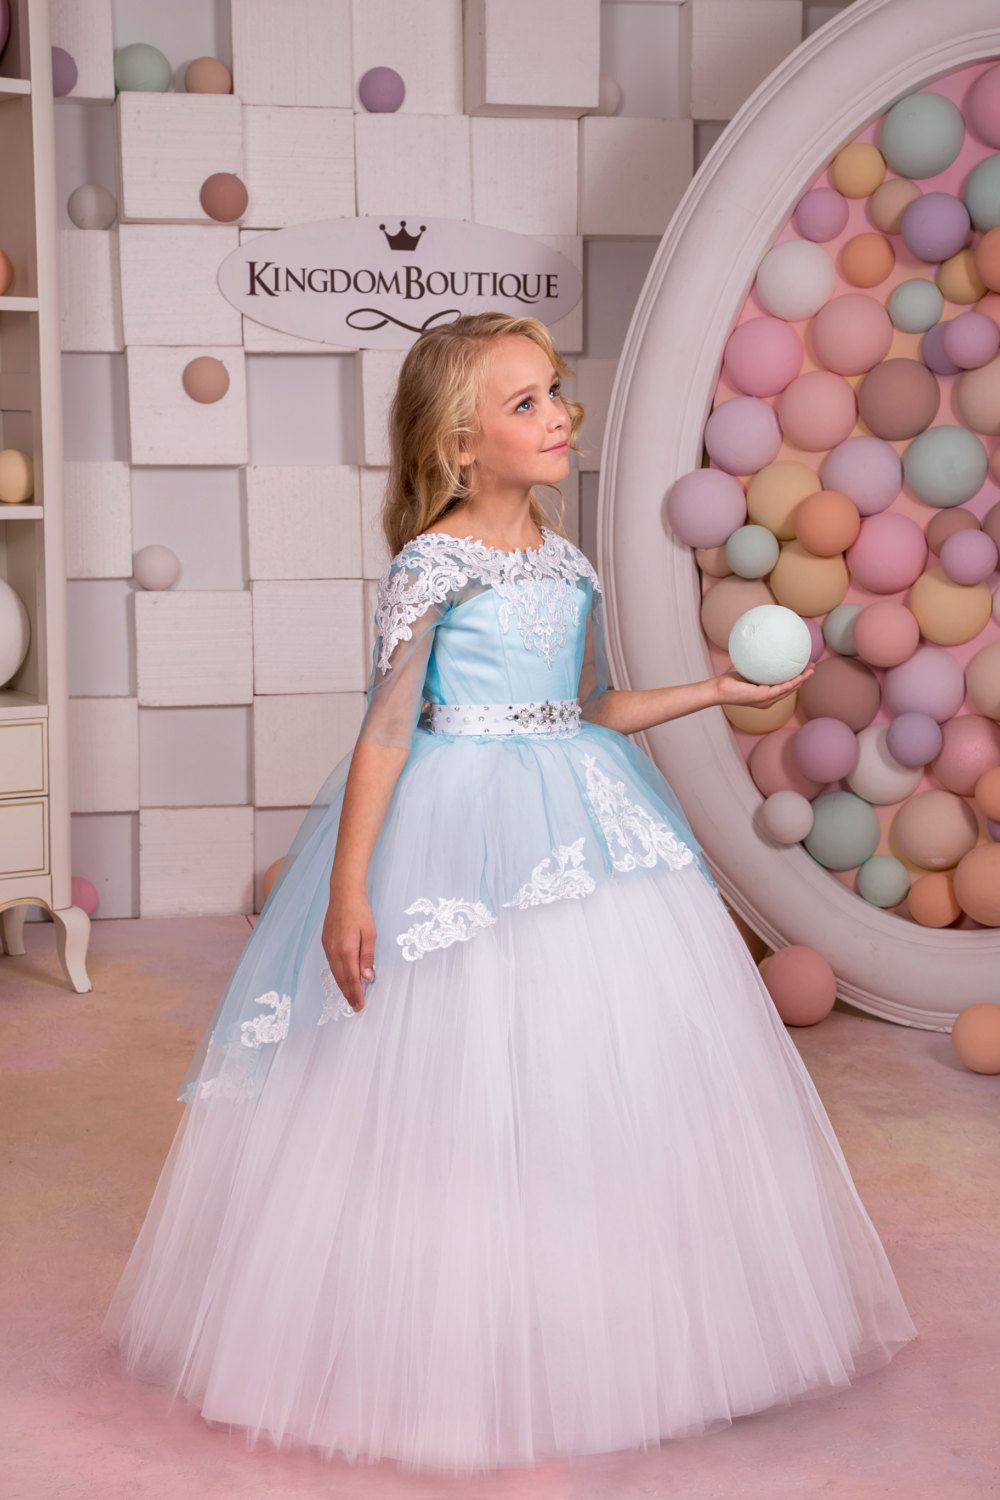 White and blue flower girl dress wedding party holiday birthday white and blue flower girl dress wedding party holiday birthday bridesmaid flower girl white and blue tulle dress 14 1055 izmirmasajfo